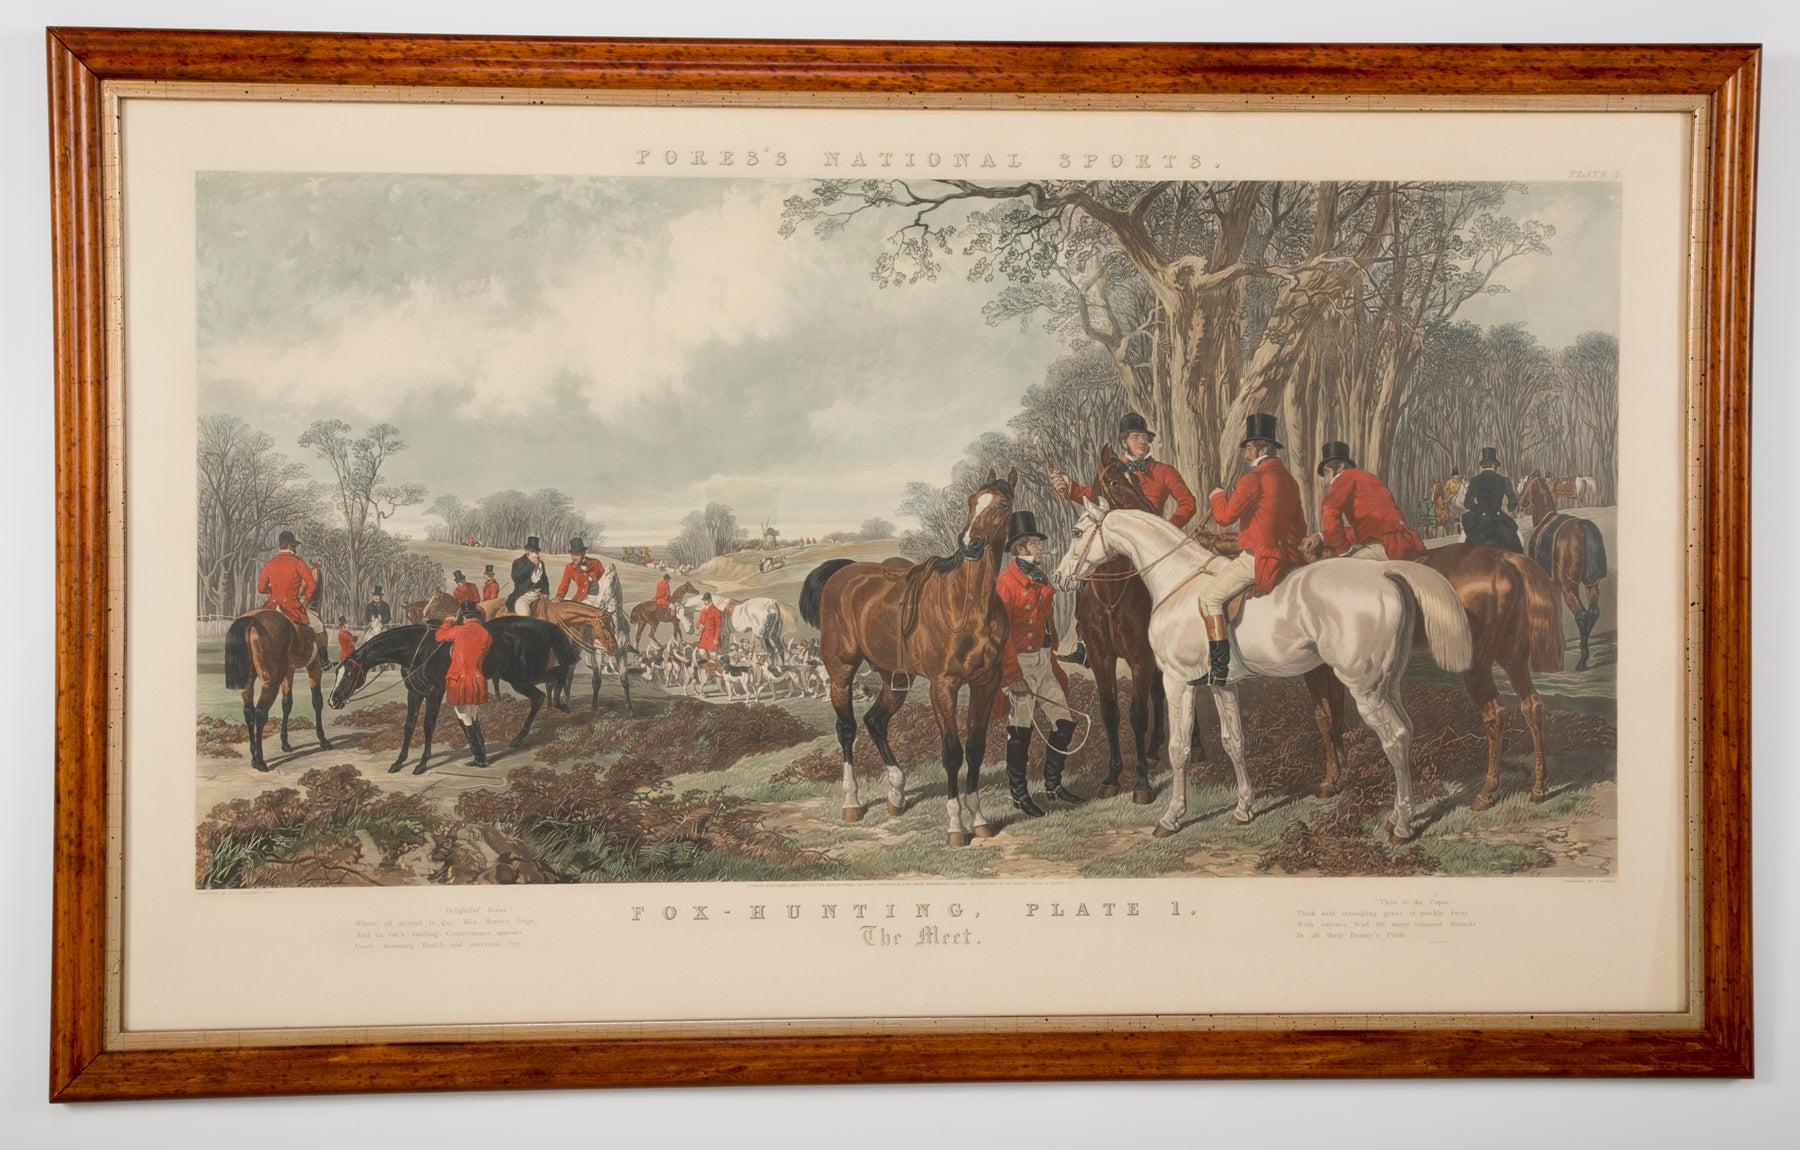 A Fox Hunting Scene by John Frederick Herring, Jr ( 1820 - 1907 )